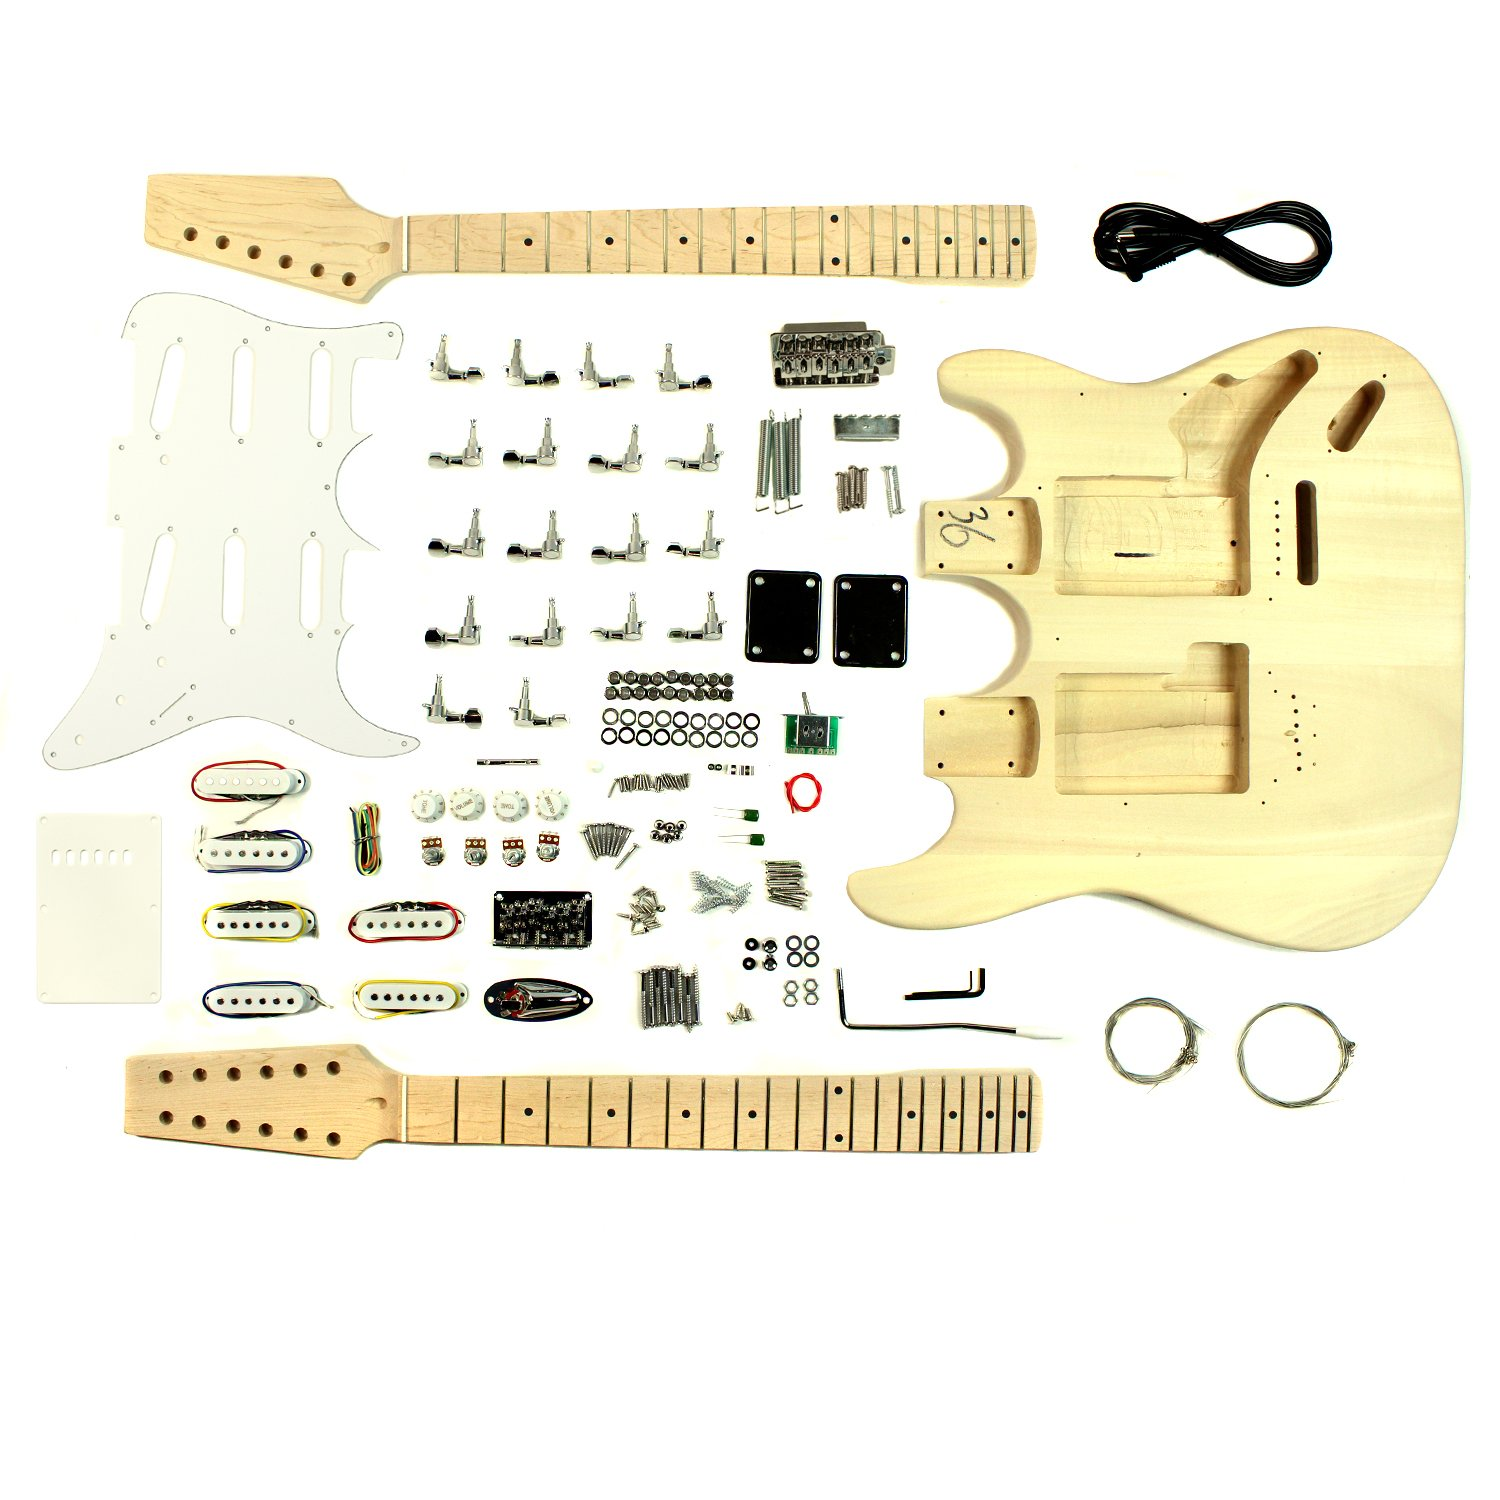 Build Your Own Guitar Kits Who Here Has Bought One Double Neck Sg Wiring Diagram Http Amazoncouk Dp B00j7zxjqg Refwl It O Pd S Ttl Encodingutf8colid2ac47y51l27uycoliidi1wjq7svq31e3o